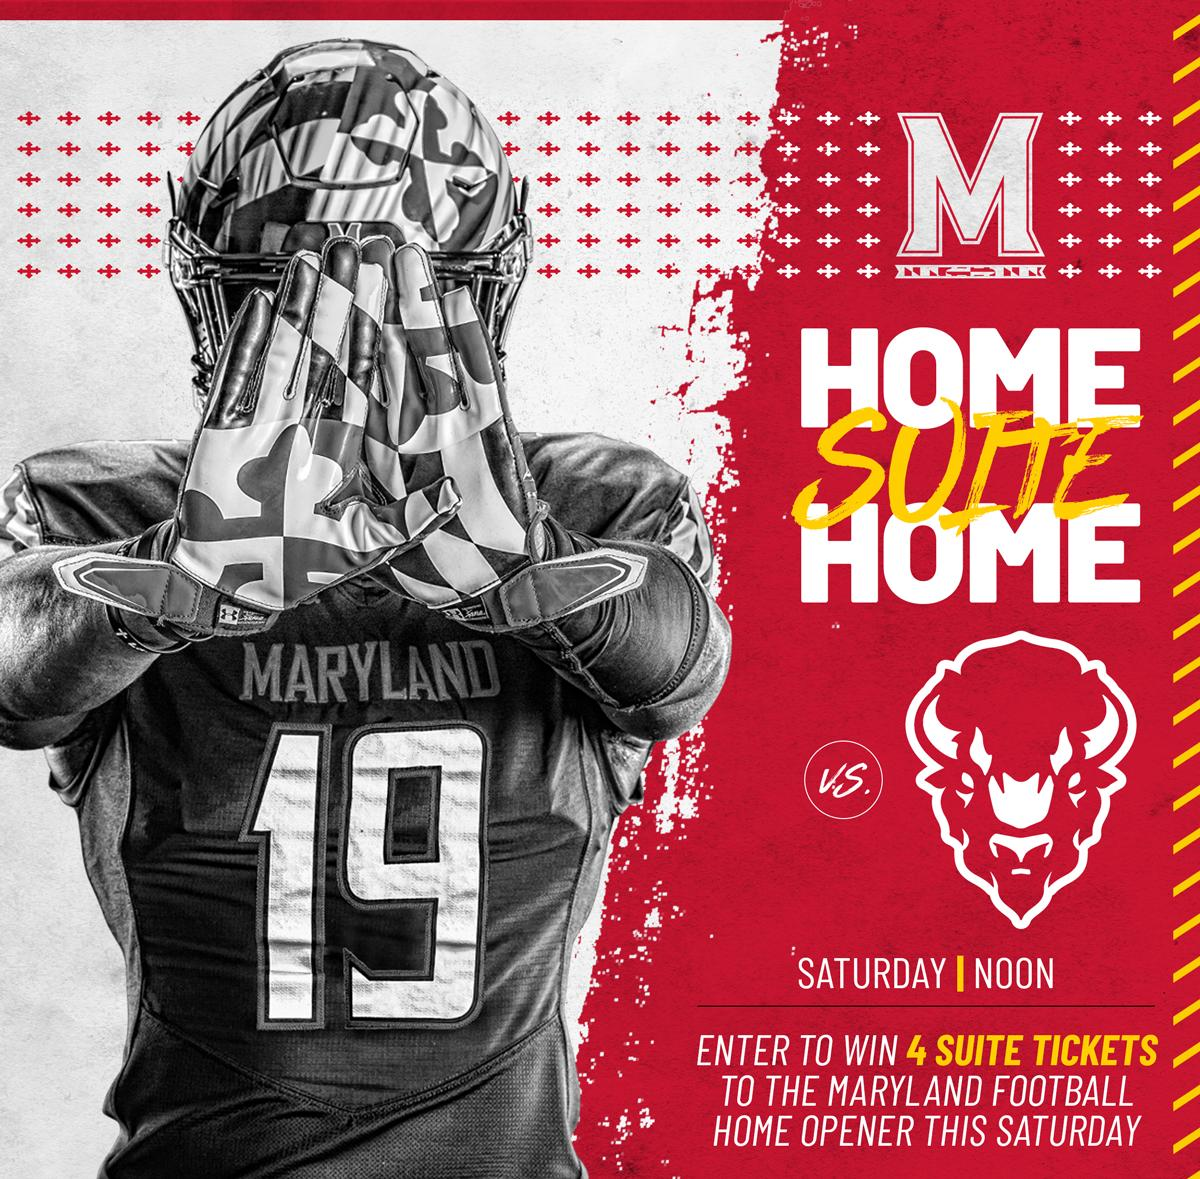 GIVEAWAY - Enter to win four (4) suite tickets to the @TerpsFootball home opener vs. Howard this Saturday at Capital One Field at Maryland Stadium! Winners will be selected and notified on Wednesday, 8/28/19. #FearTheTurtle   Enter now: https://t.co/0YCsZkGK8p #ad https://t.co/QDI0OCFdG5